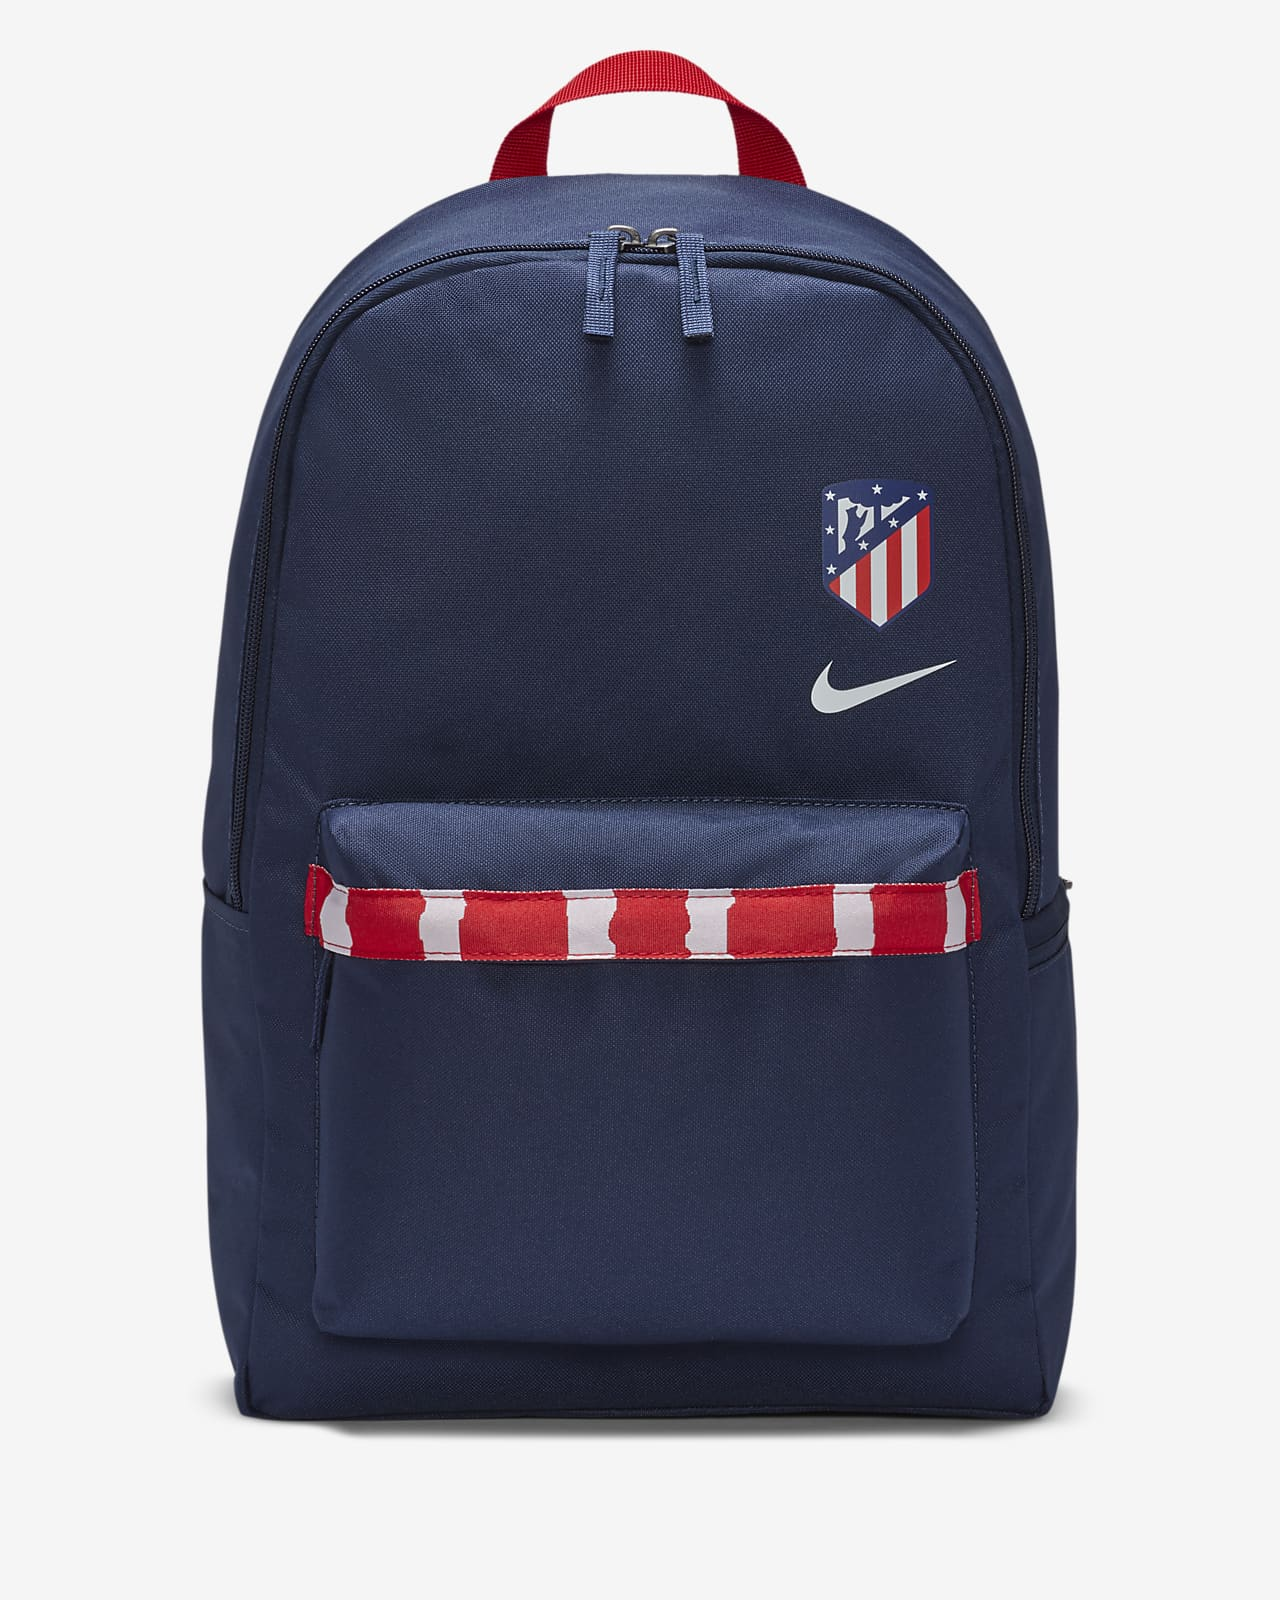 Atlético de Madrid Stadium Football Backpack